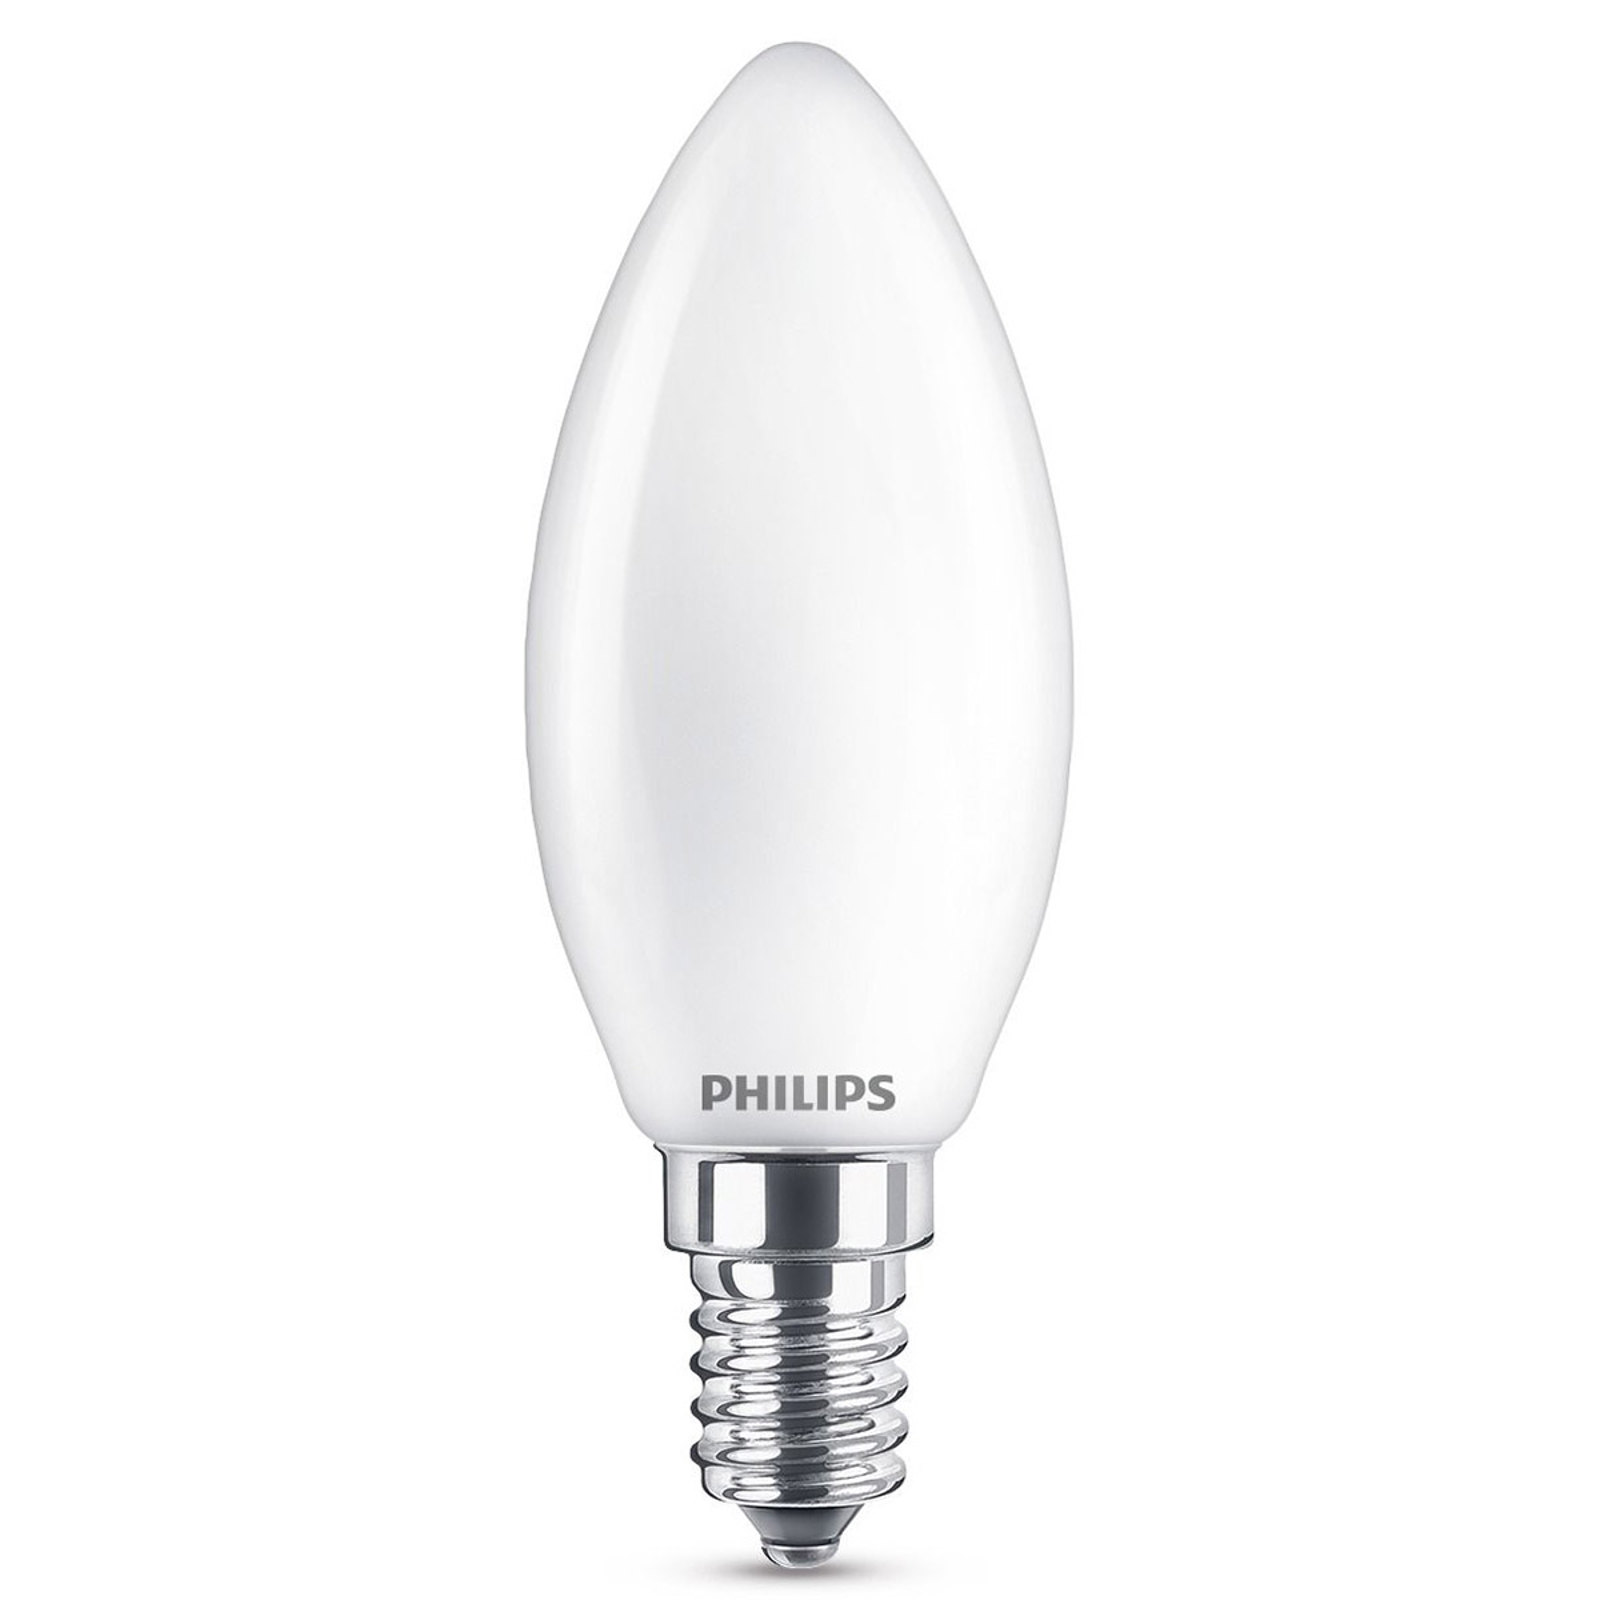 Philips E14 2,2W 827 LED-Kerzenlampe, matt kaufen